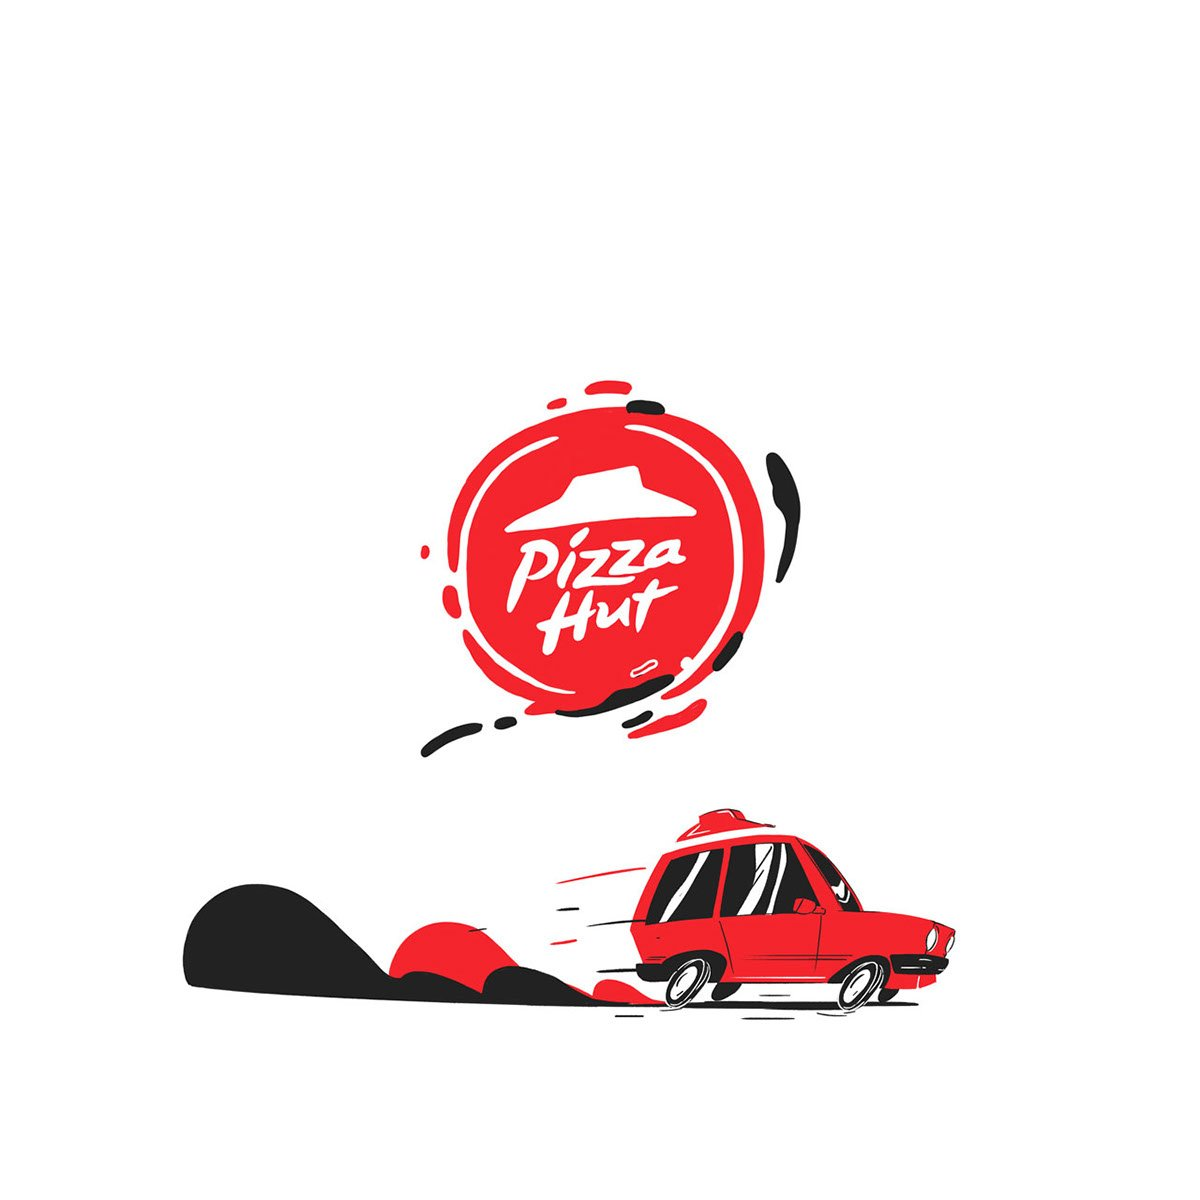 idesign pizzahut 01